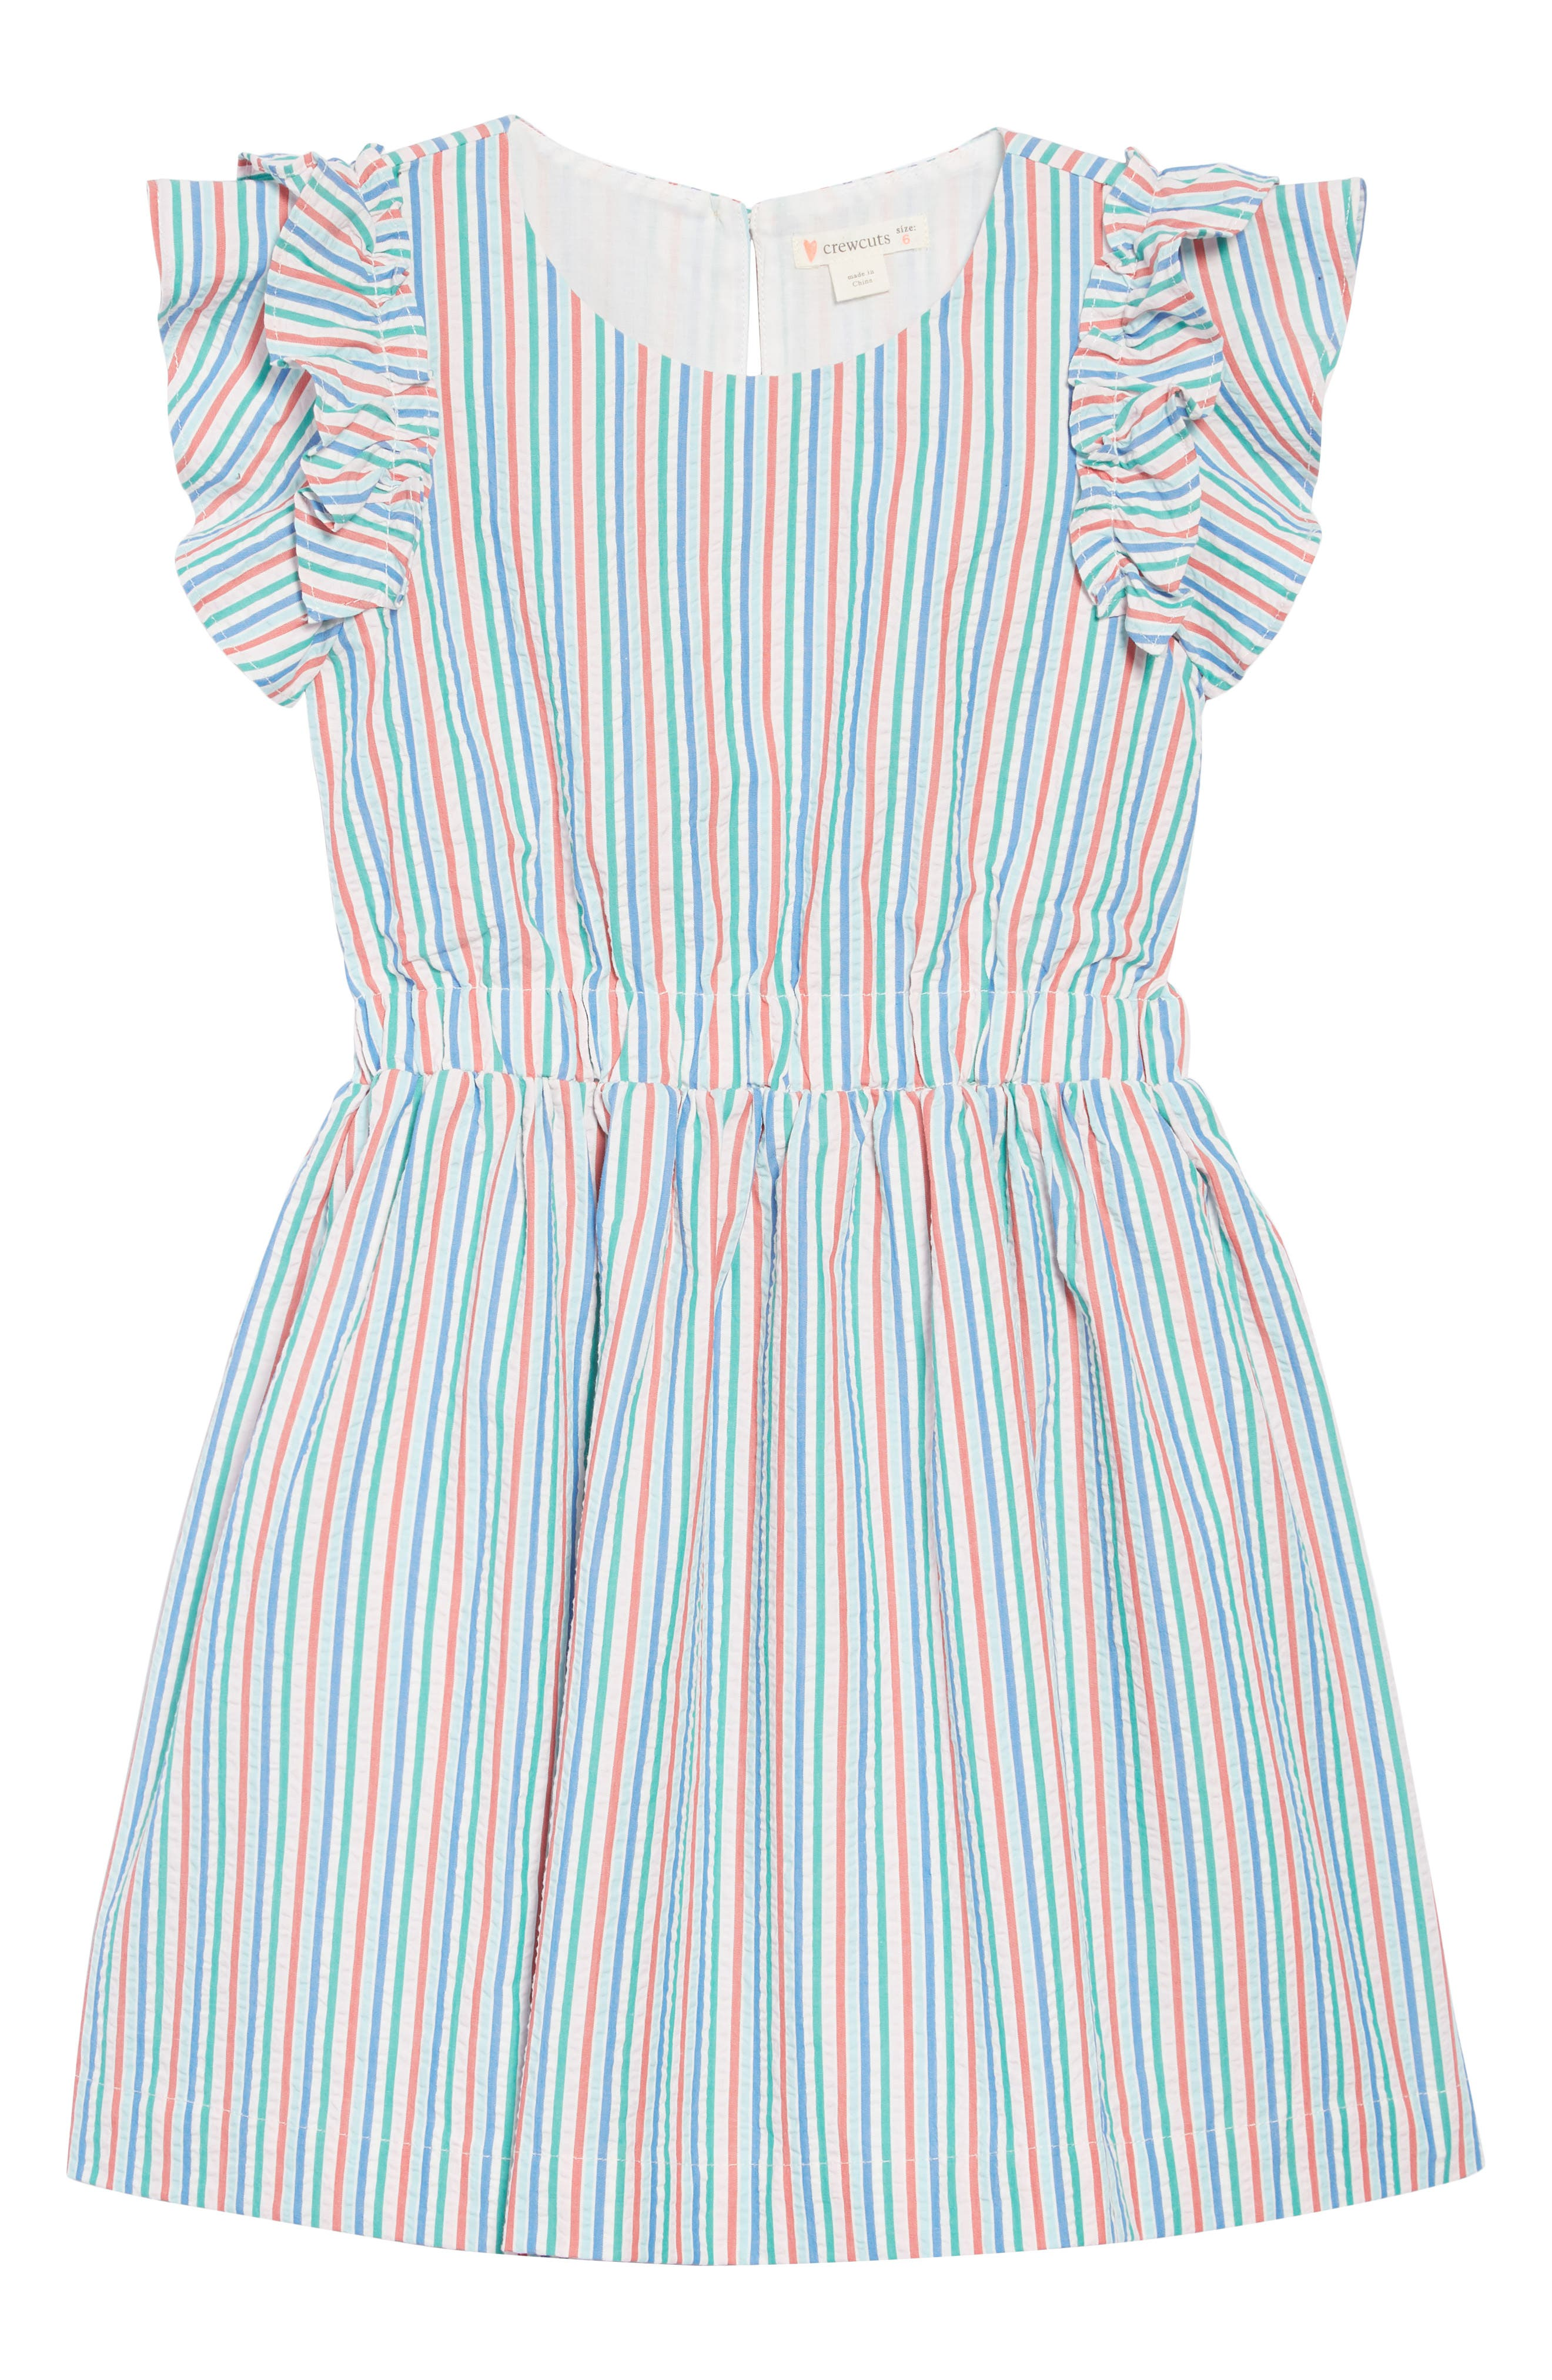 CREWCUTS BY J.CREW Kate Ruffle Seersucker Dress, Main, color, IVORY BLUE MULTI